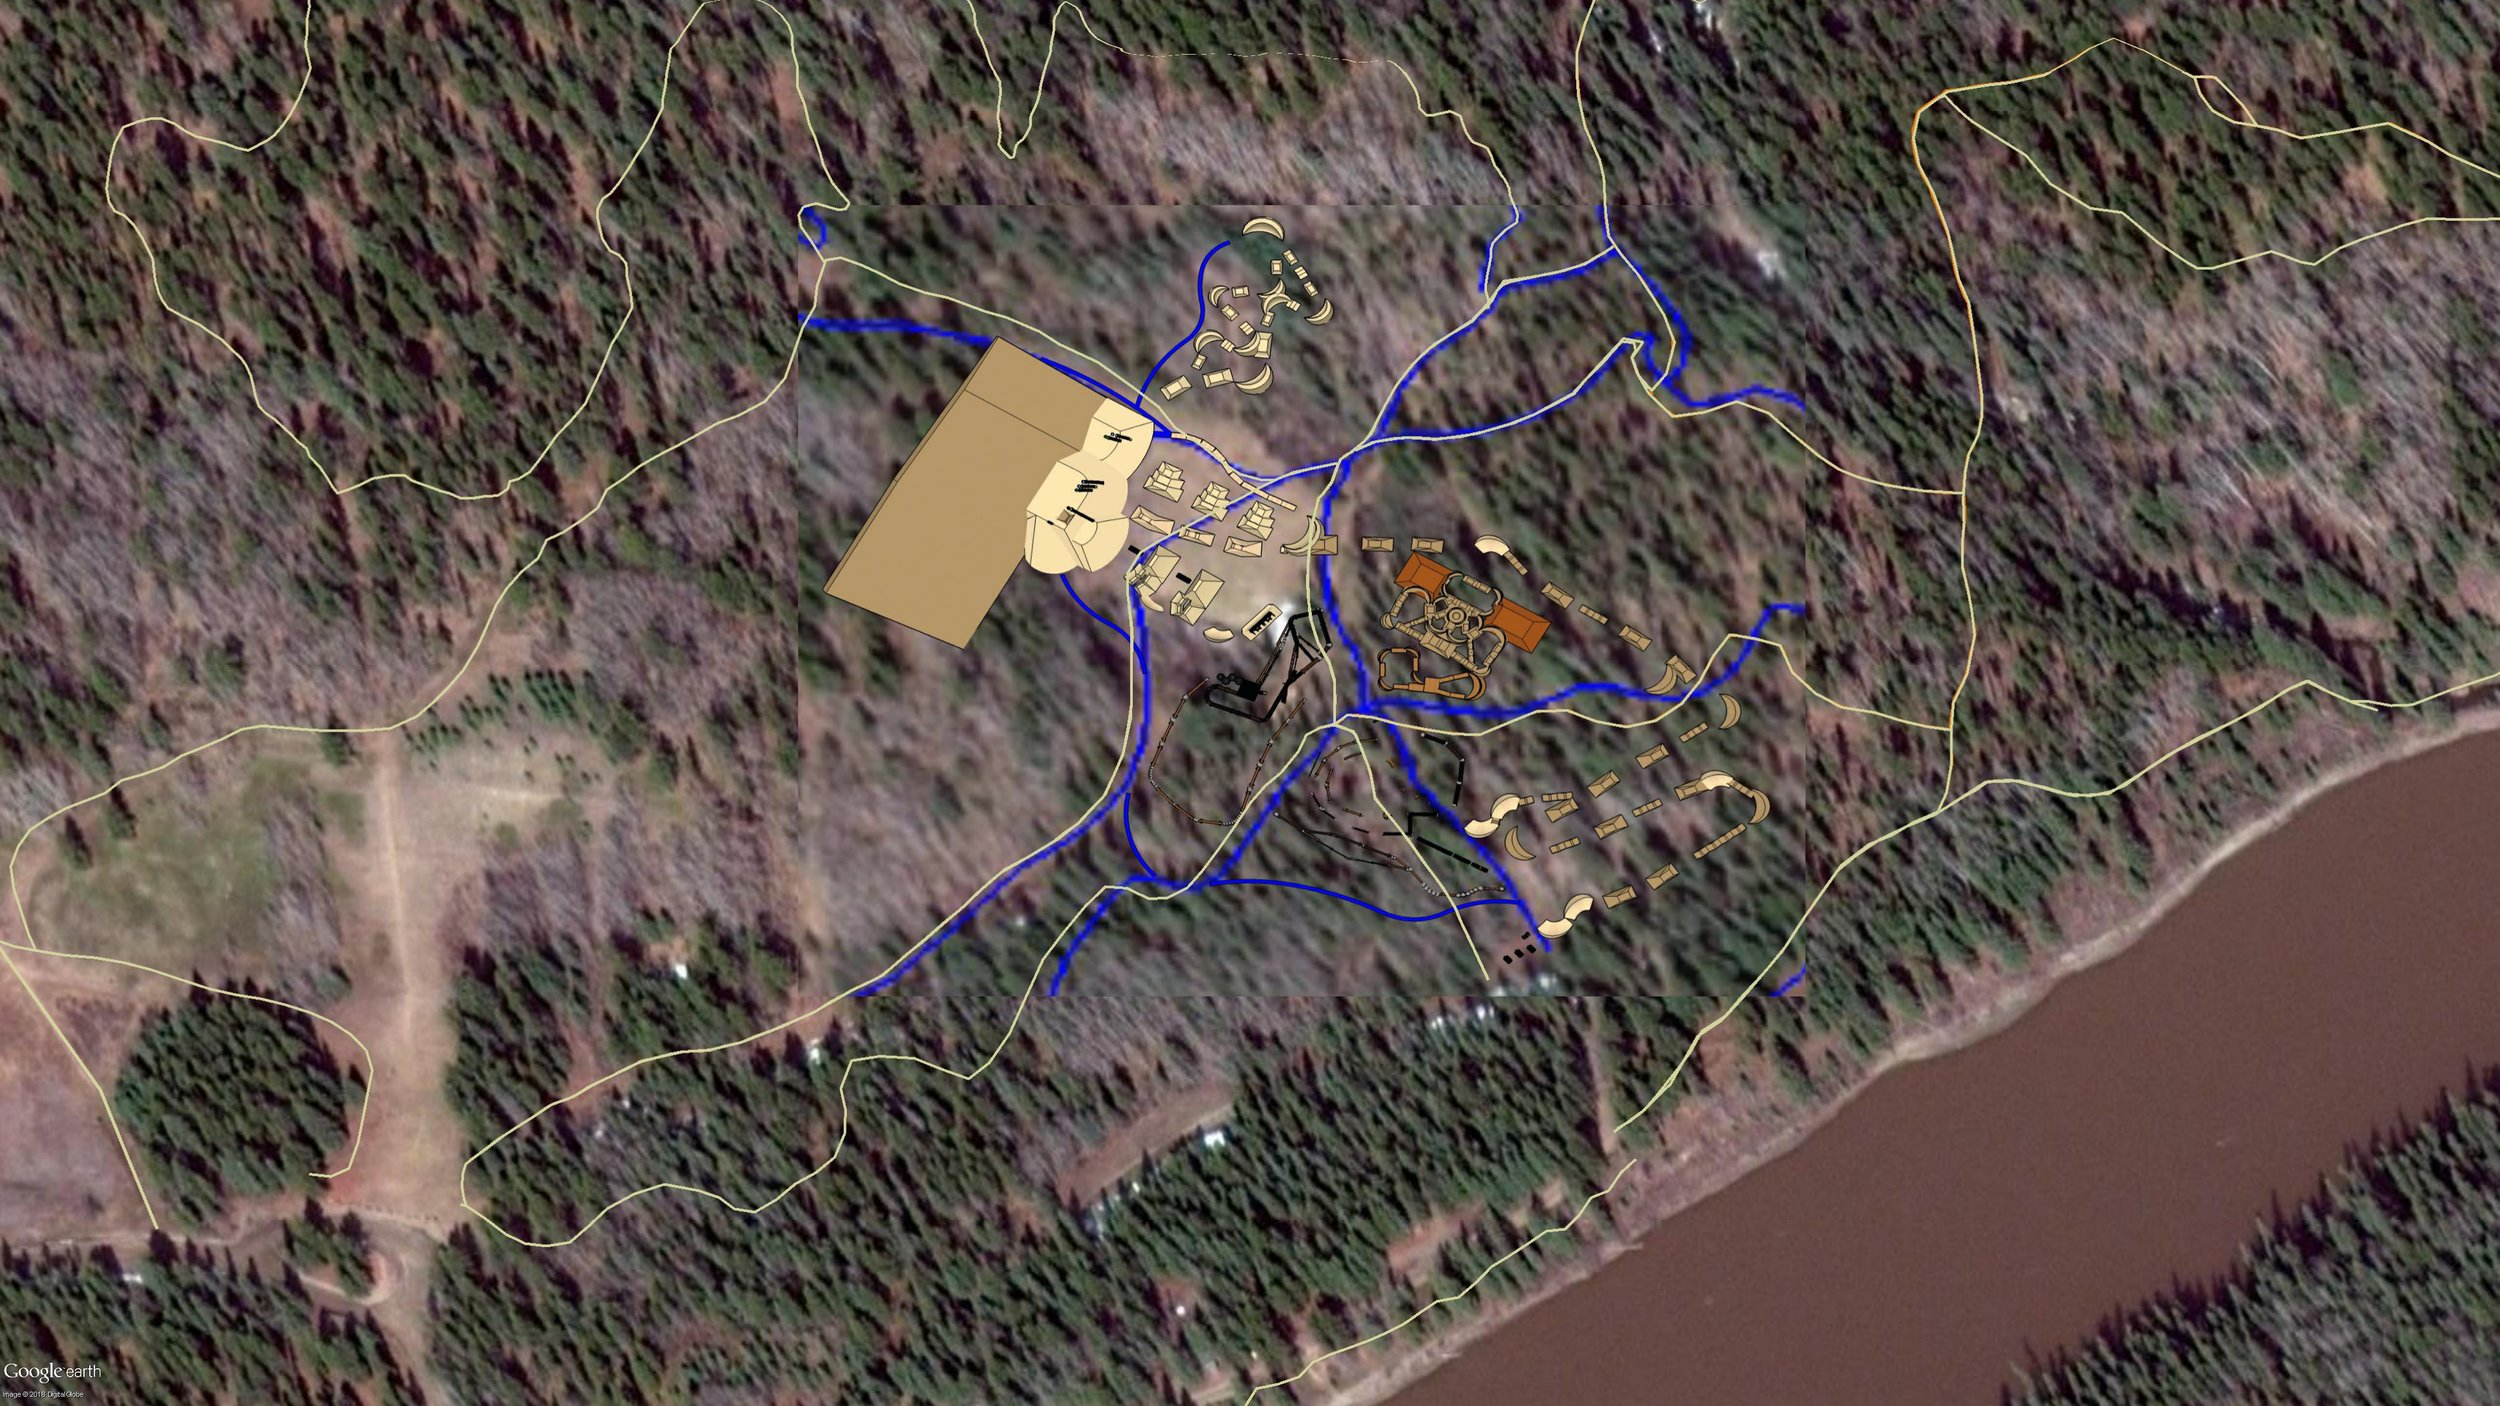 The Edson Bike Skills Park is 8 acres in size. Willmore Park is 379 acres in size (not including the newer trails added on Crown Land west of Willmore). * 2016 design shown.